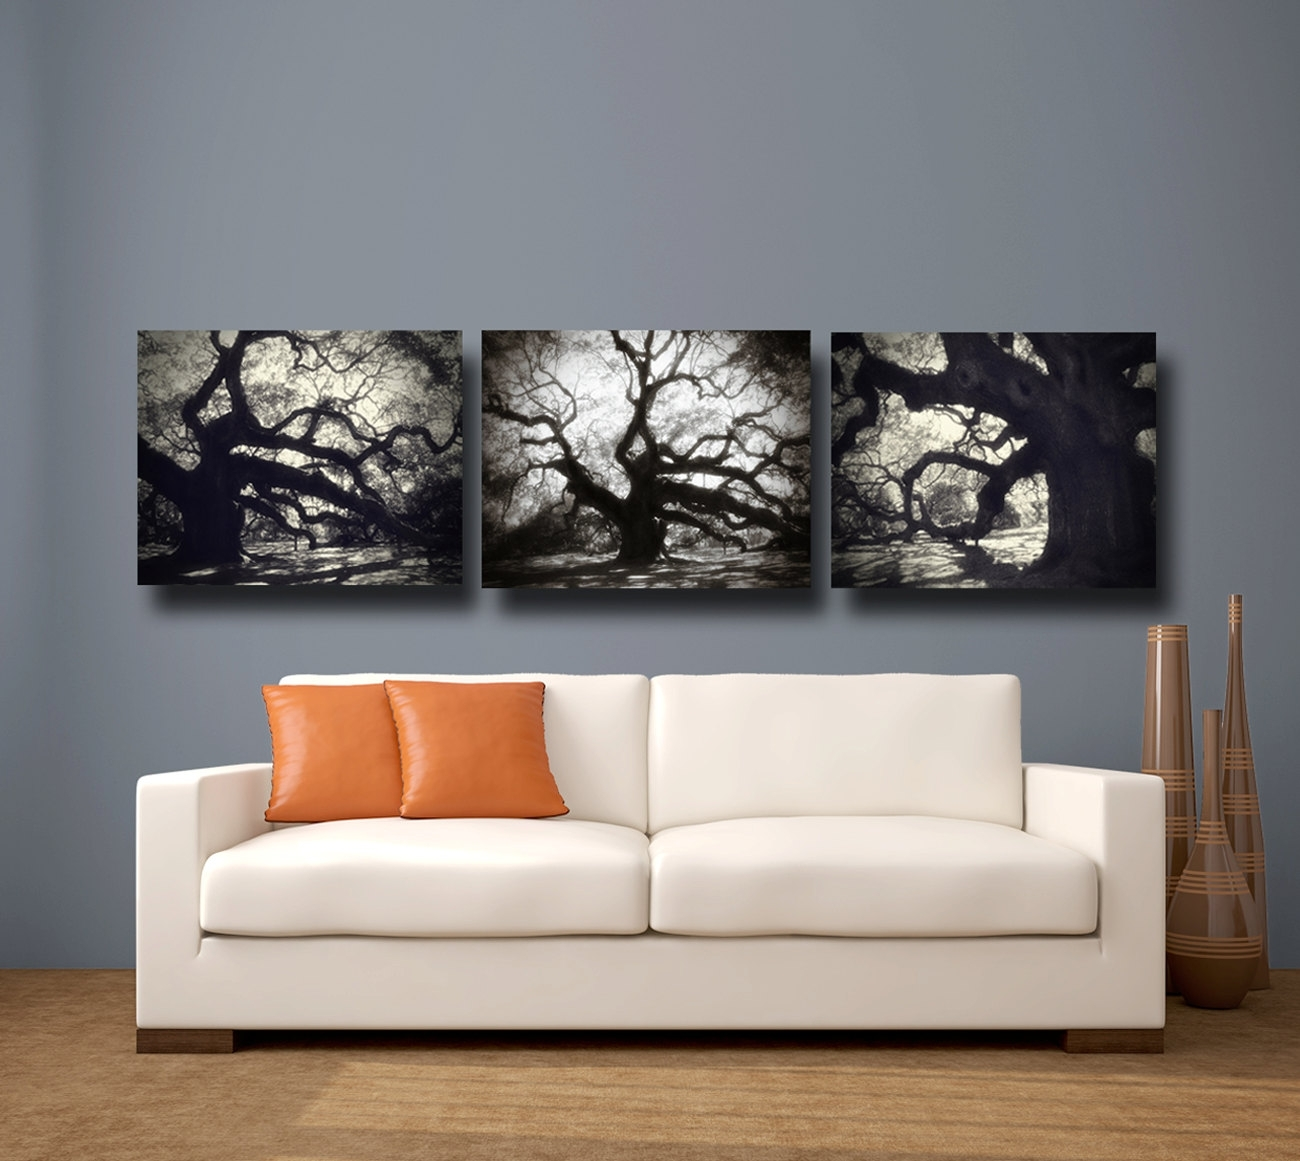 Wall Art Designs: Black And White Canvas Wall Art Astounding With Regard To 2018 Black And White Canvas Wall Art (View 15 of 15)